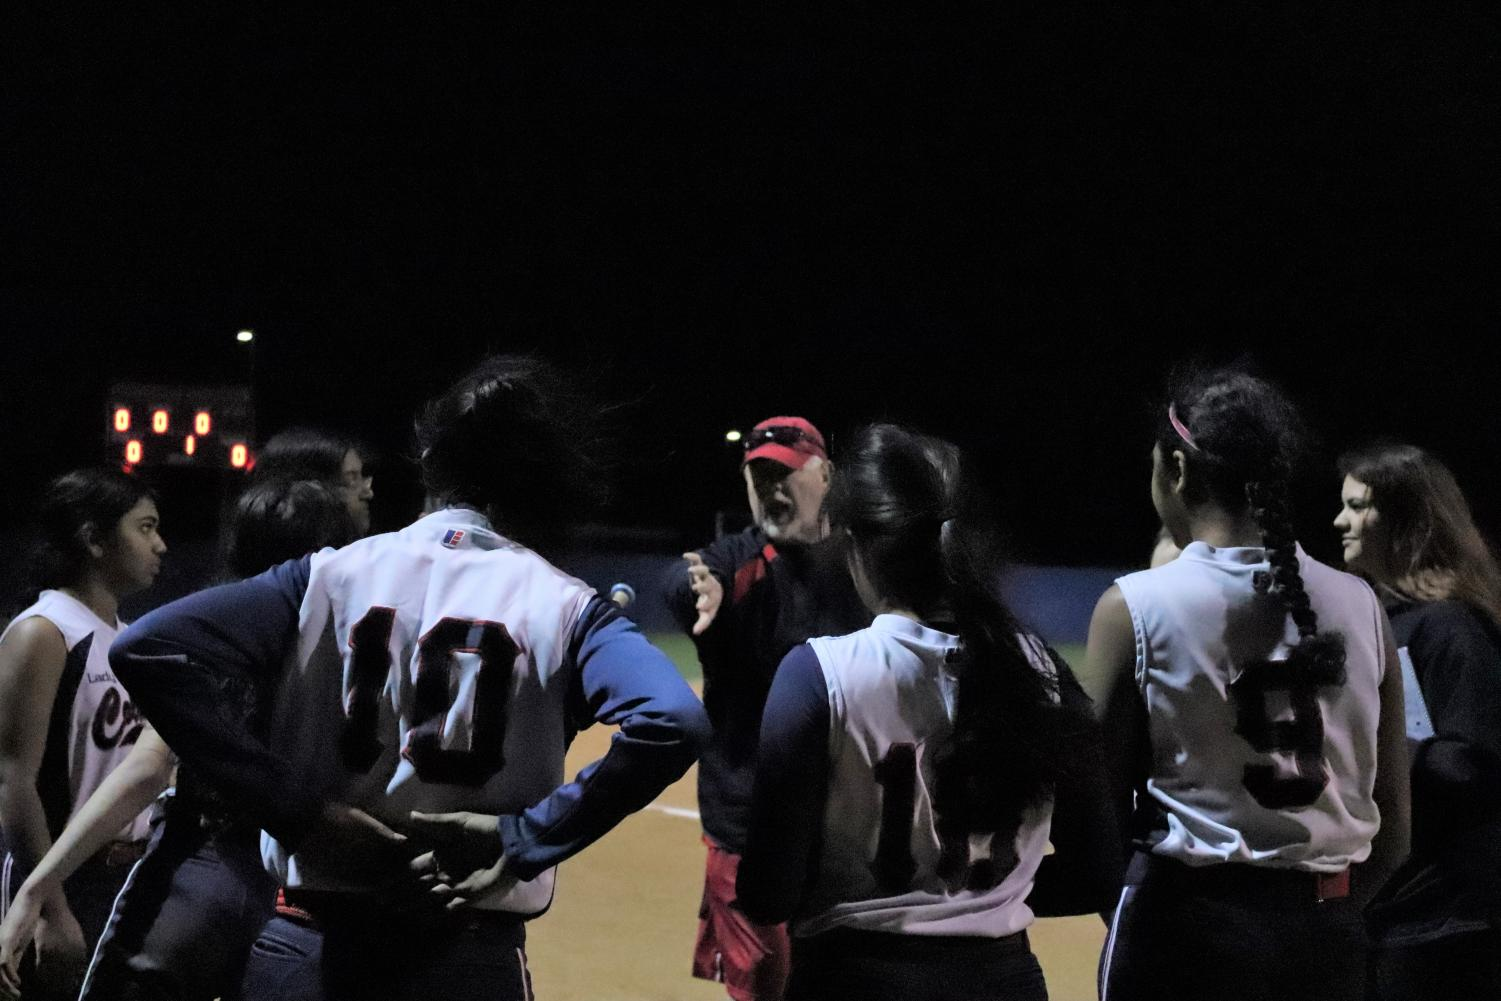 After+the+game%2C+Jefferson+players+and+coaches+huddled+up.+The+players+listen+as+head+Varsity+softball+coach+Mitchell+Hughes+talks+to+the+team+about+their+performance+during+the+game.